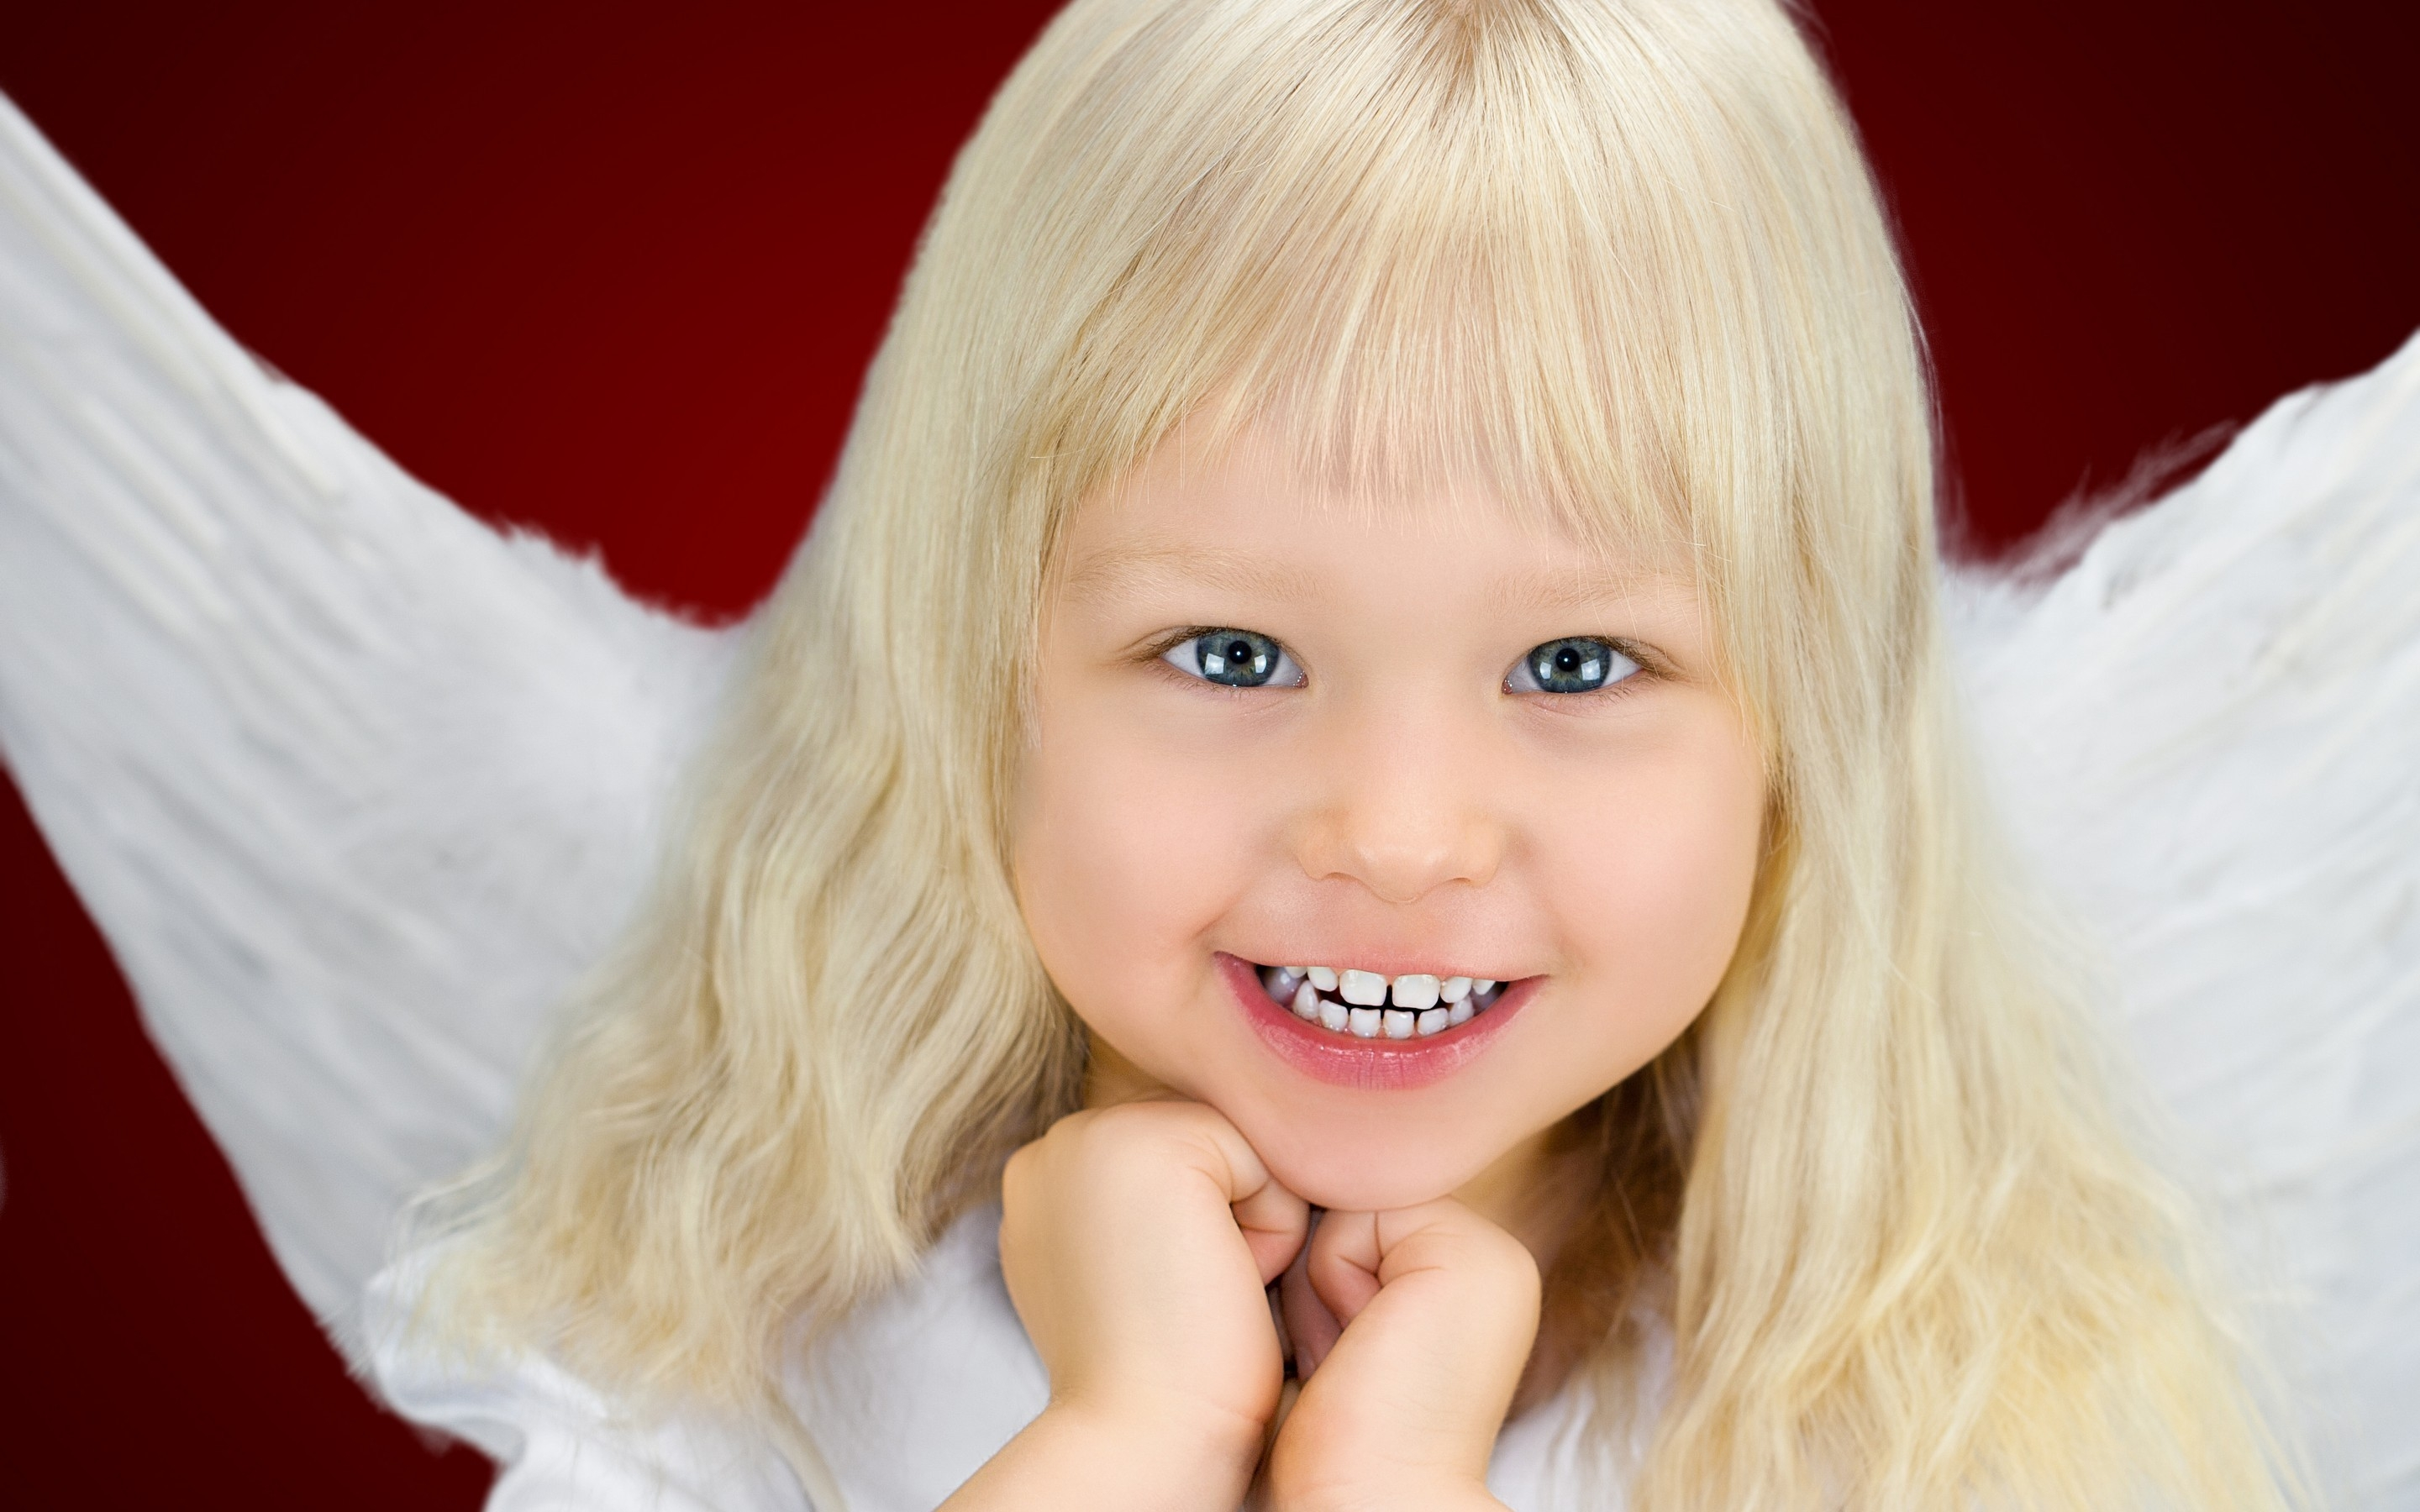 Smile of an Angel for 2880 x 1800 Retina Display resolution